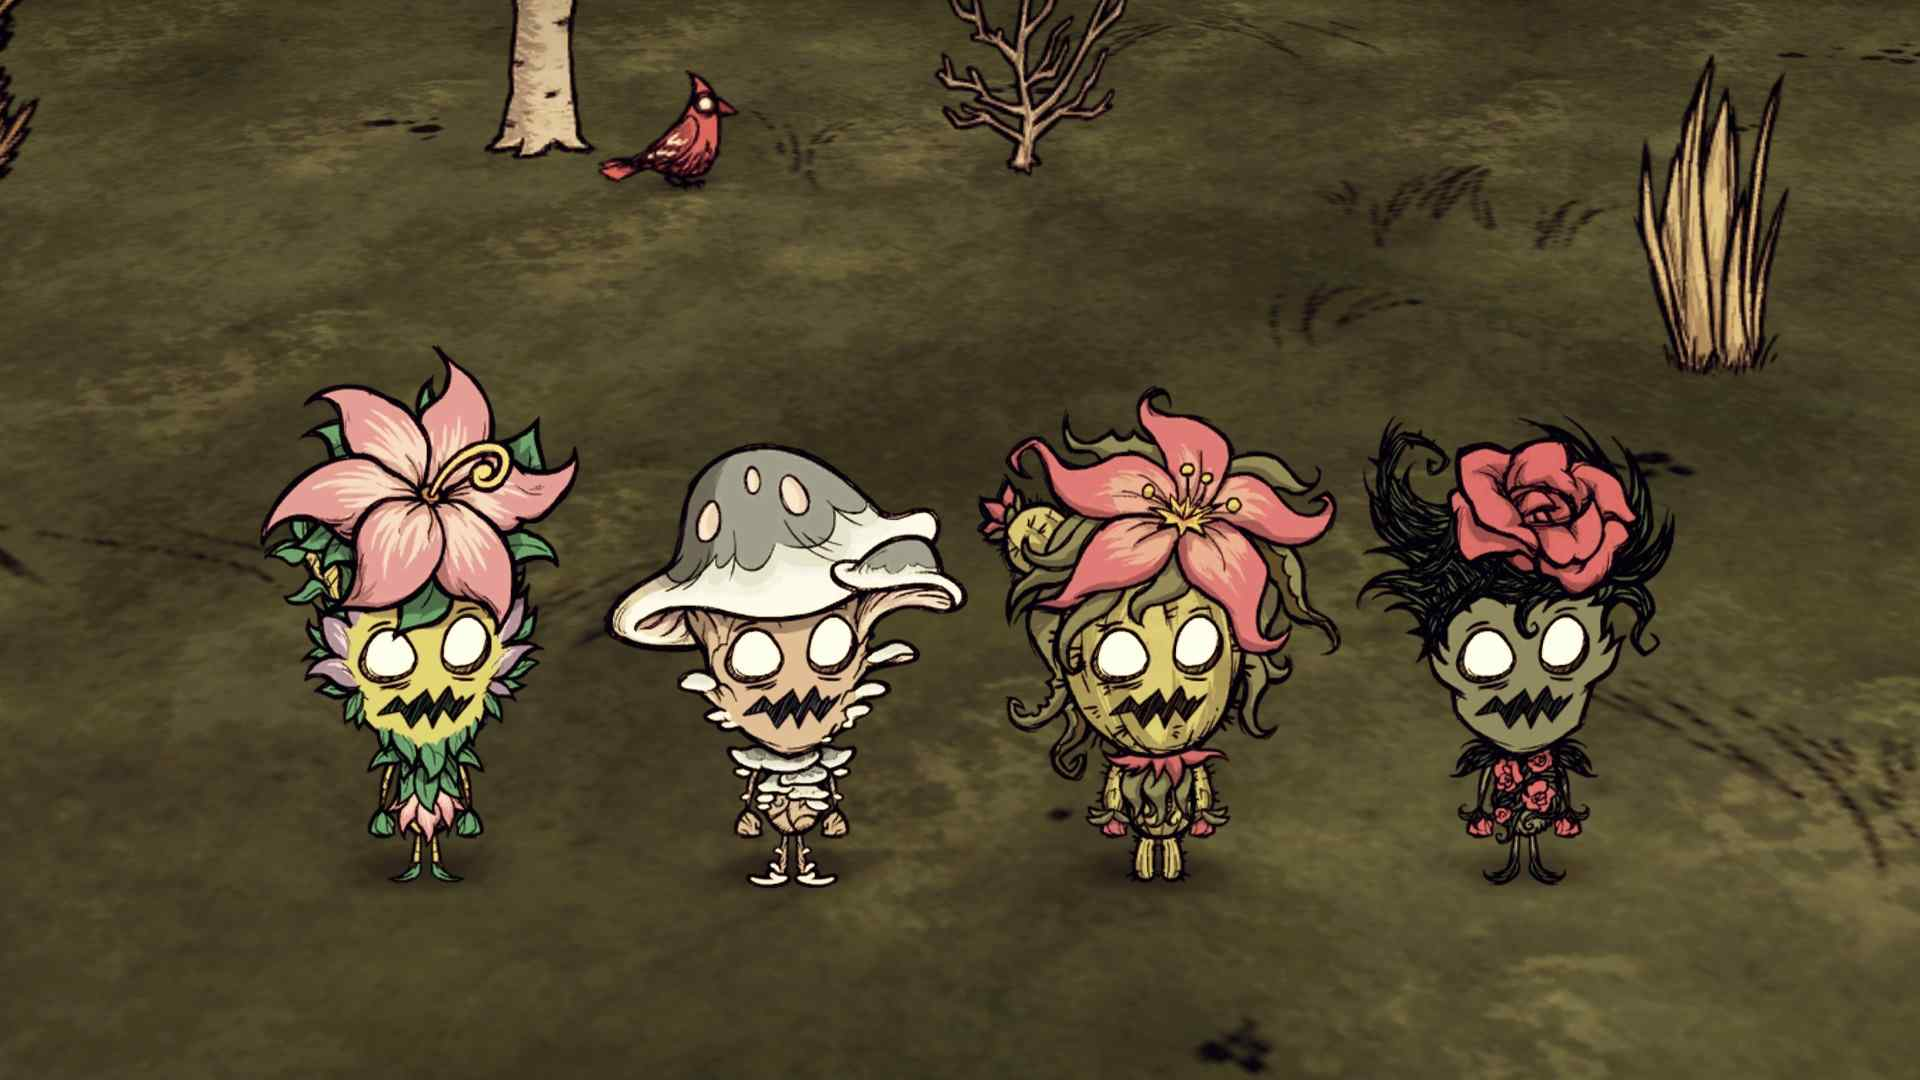 Looking for some frequently asked questions about Don't Starve Together? Here's a list of the most commonly asked ones!